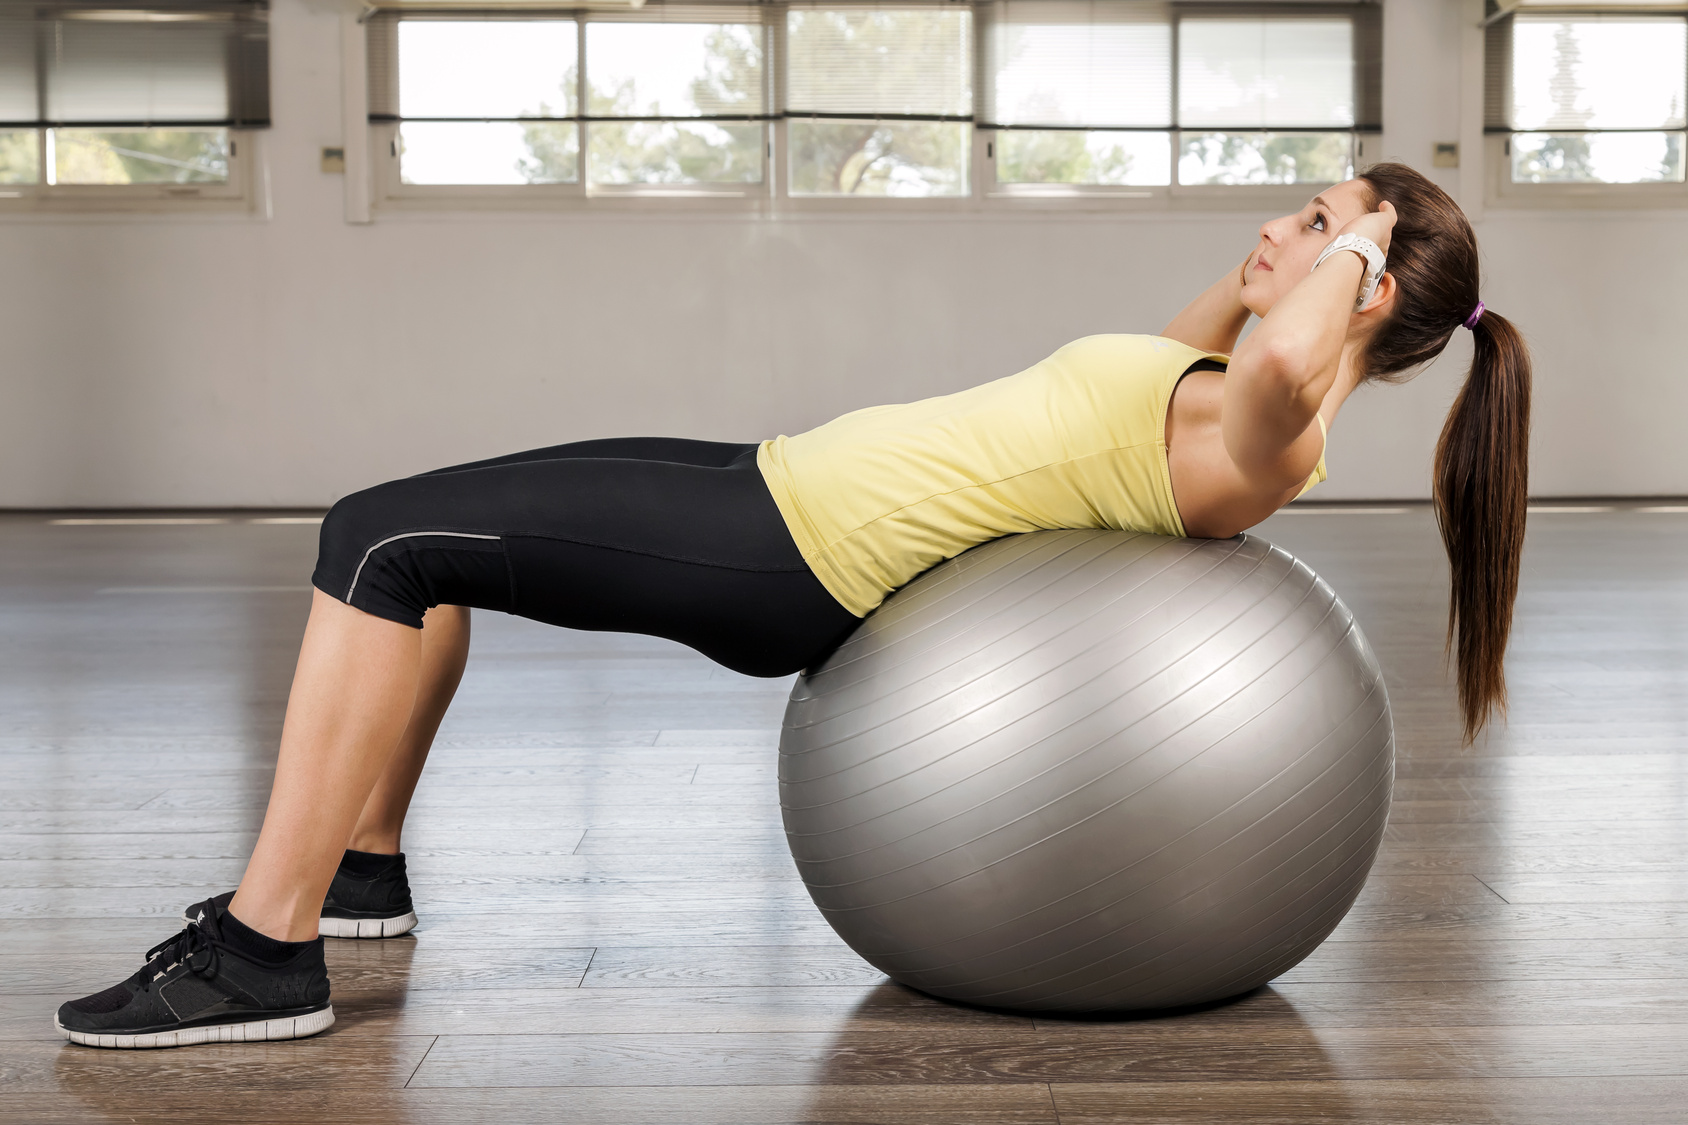 Young woman doing abdominal on a exercise ball